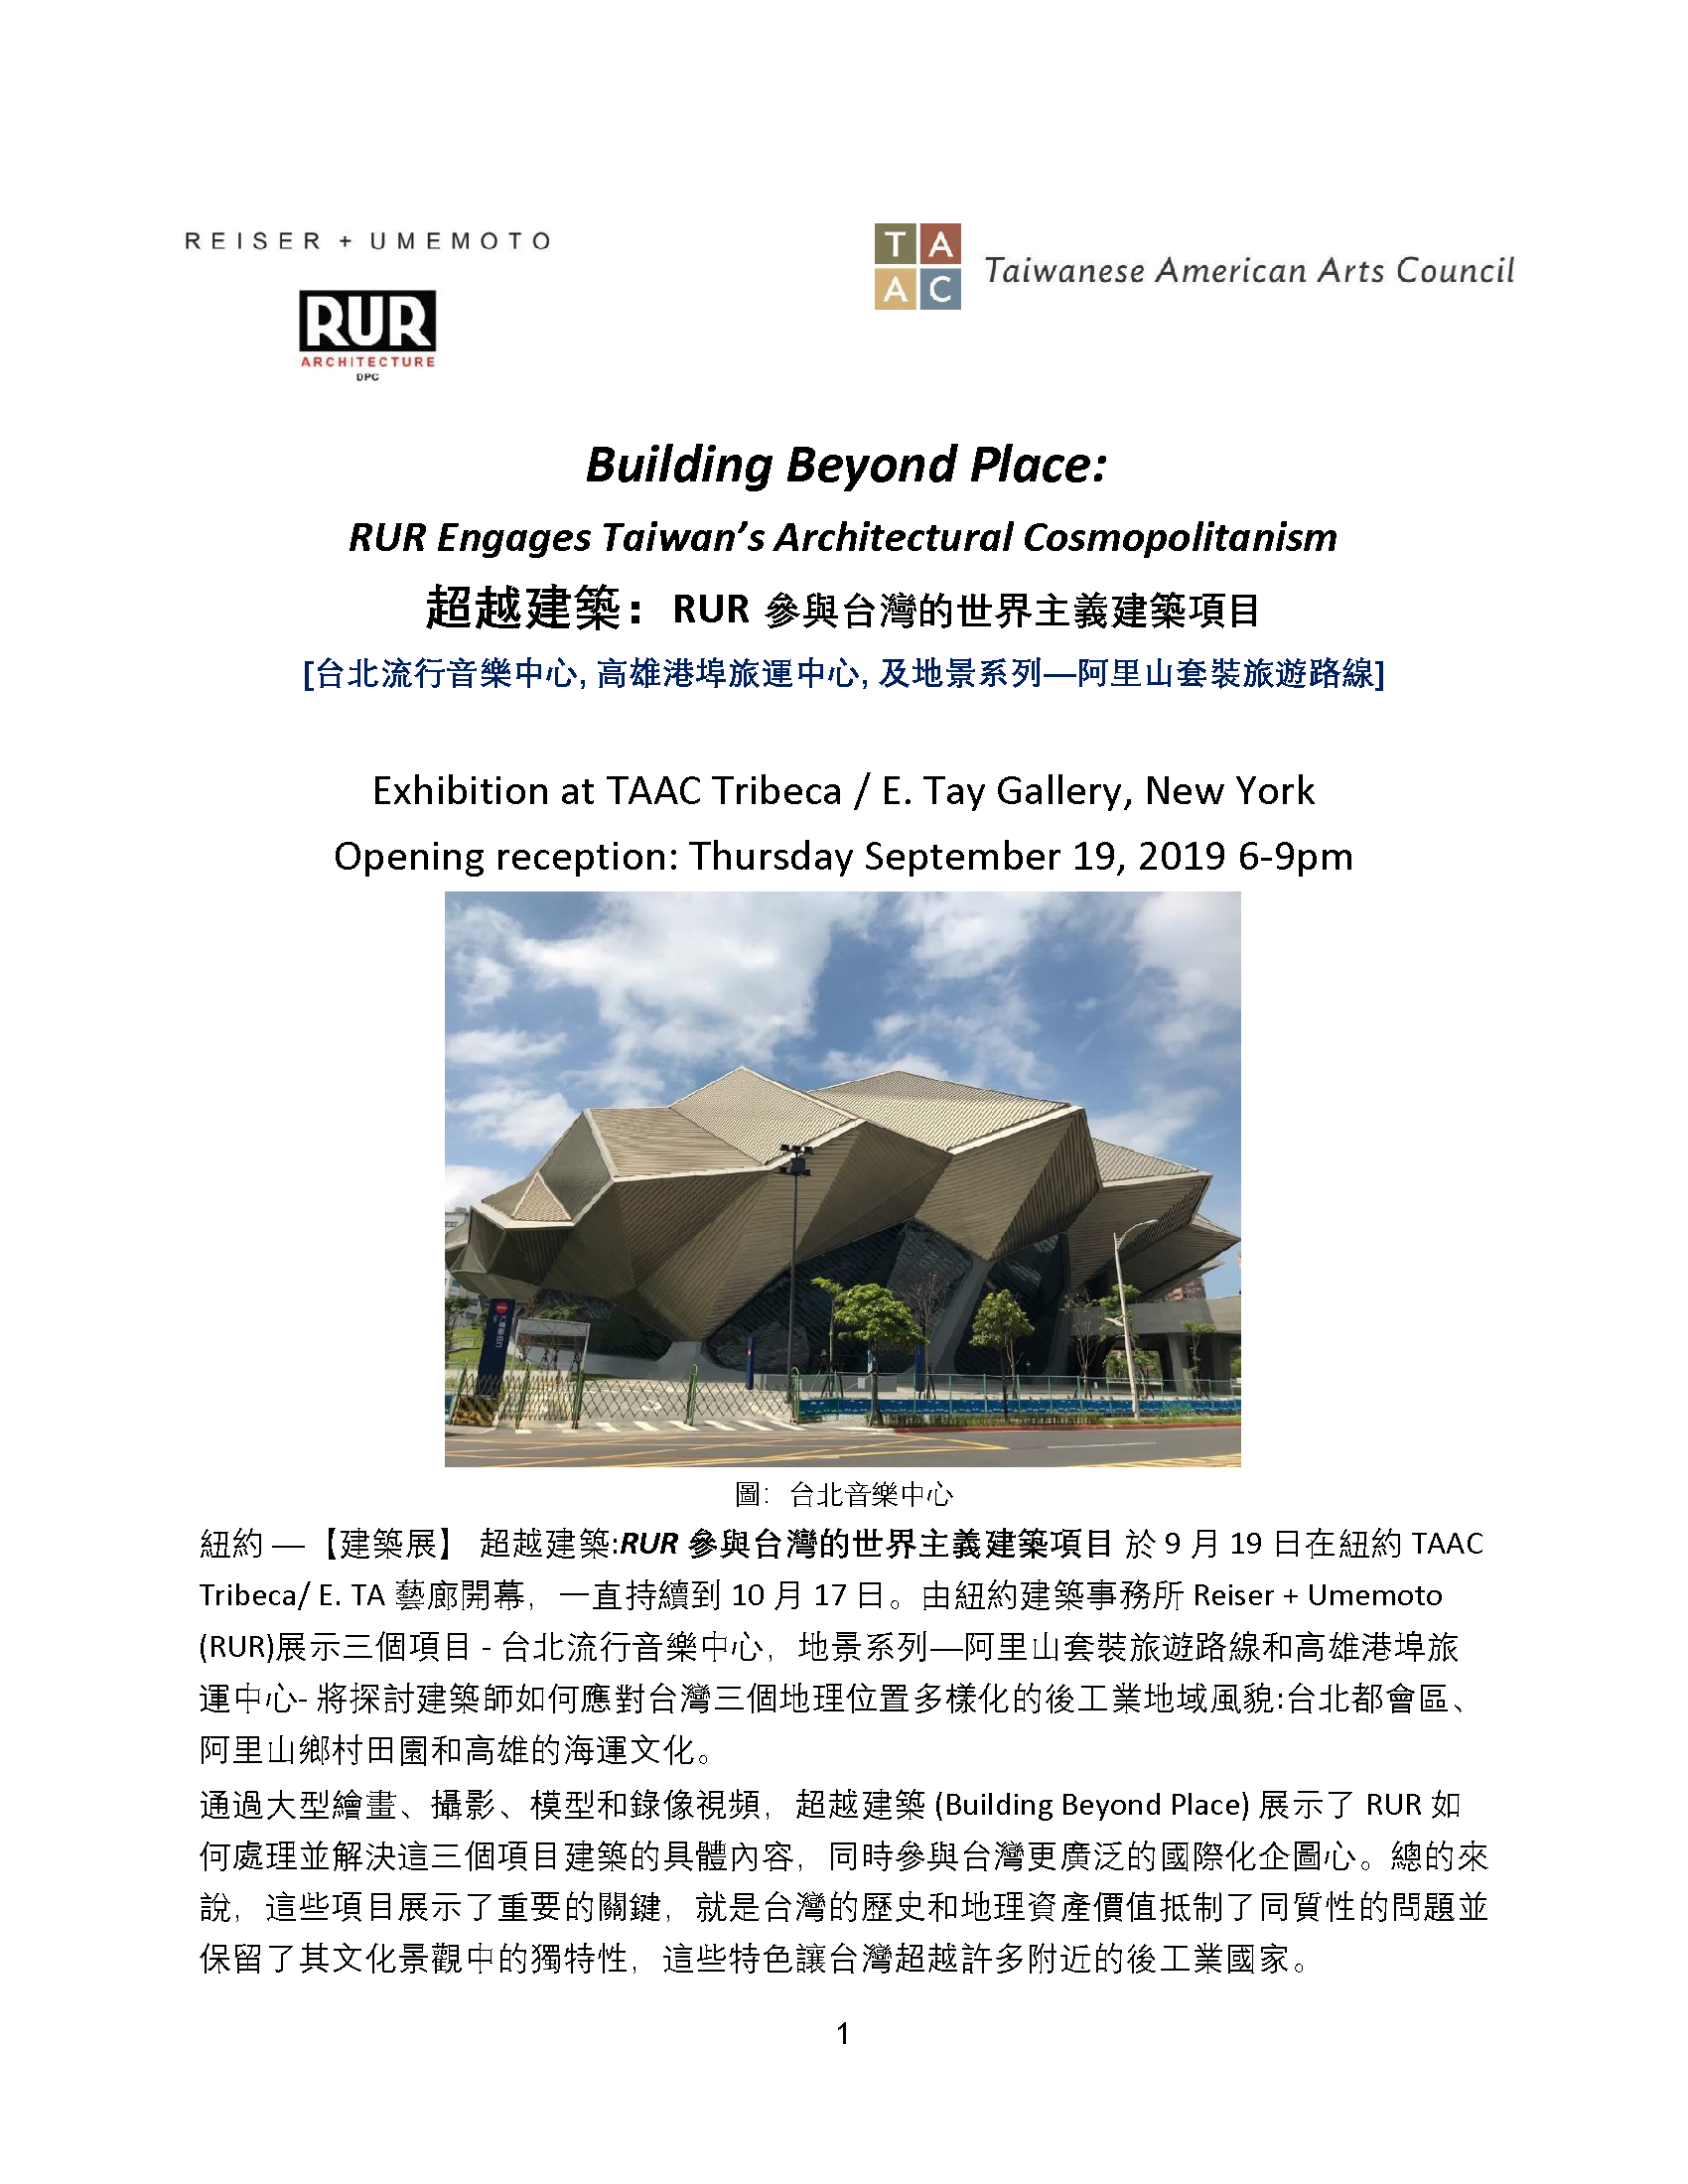 0831-Press Release CN 中文新聞稿-Building Beyond Place_ RUR Engages Taiwan's Architectural Cosmopolitanism -_Page_1.png